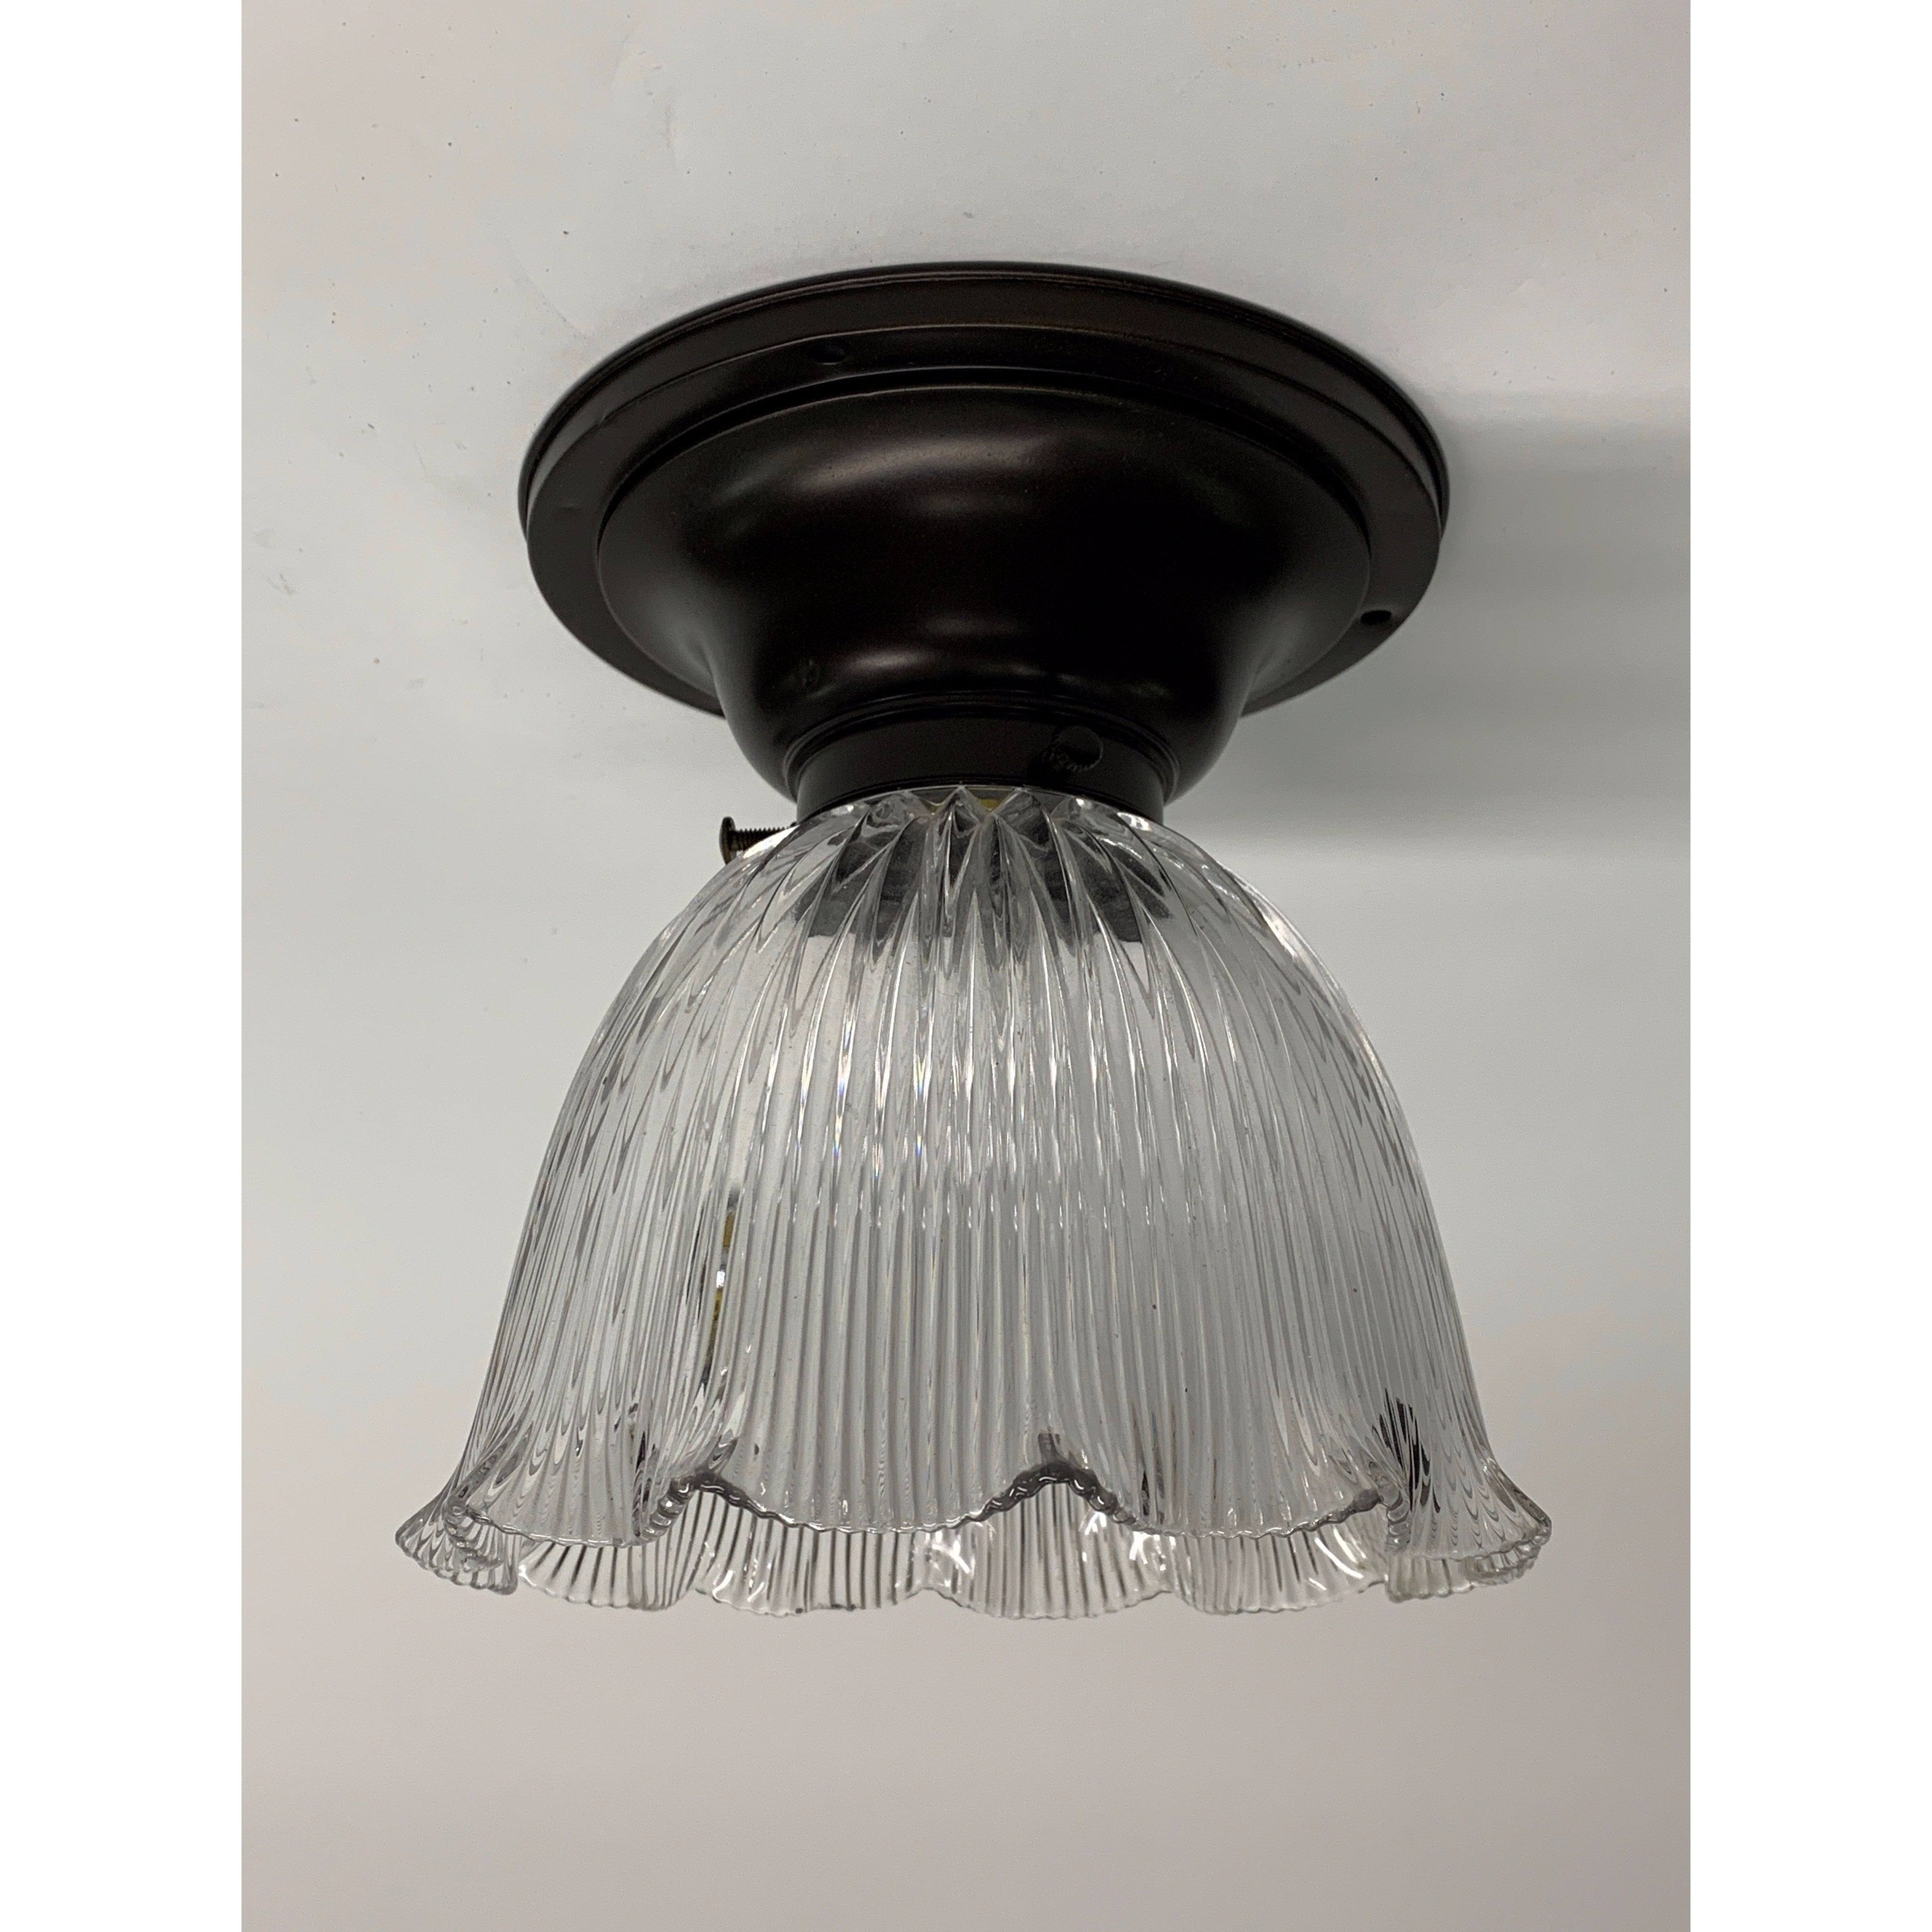 Small Light with Holophane Shade, ca 1910 #1915 - Filament Vintage Lighting